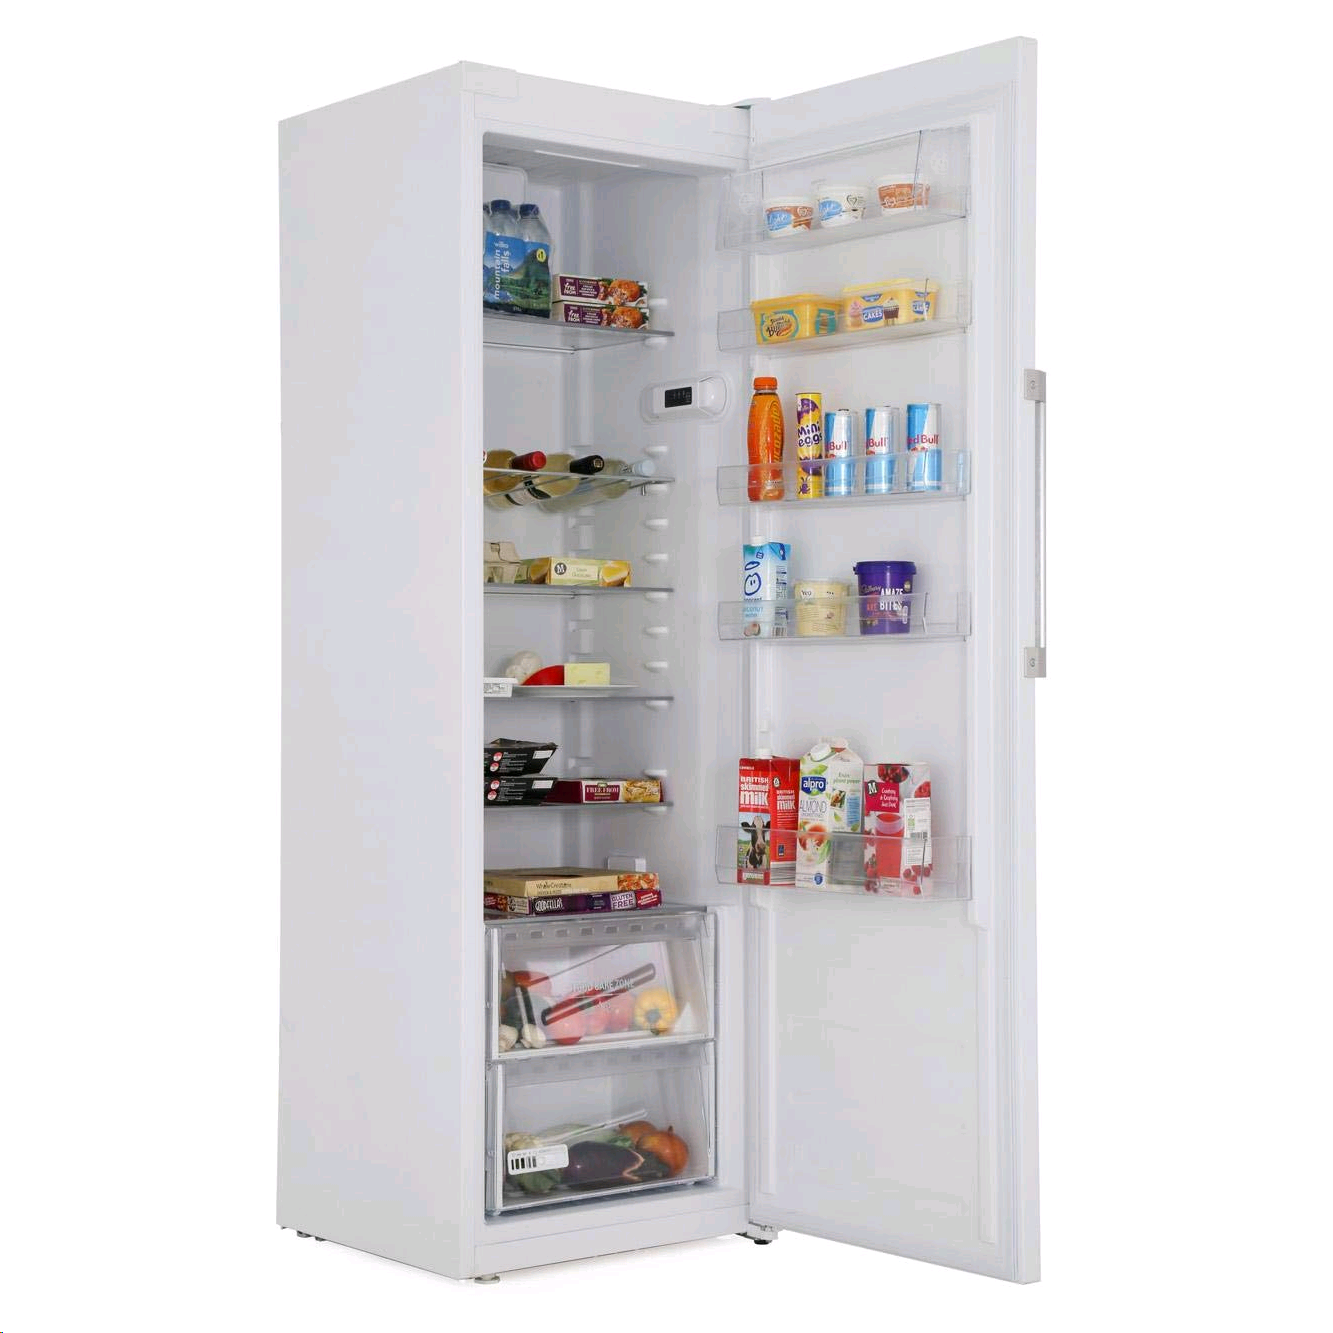 Hotpoint SH81QWRFD White  Upright Larder Fridge H187.5 W59.5 D63cm